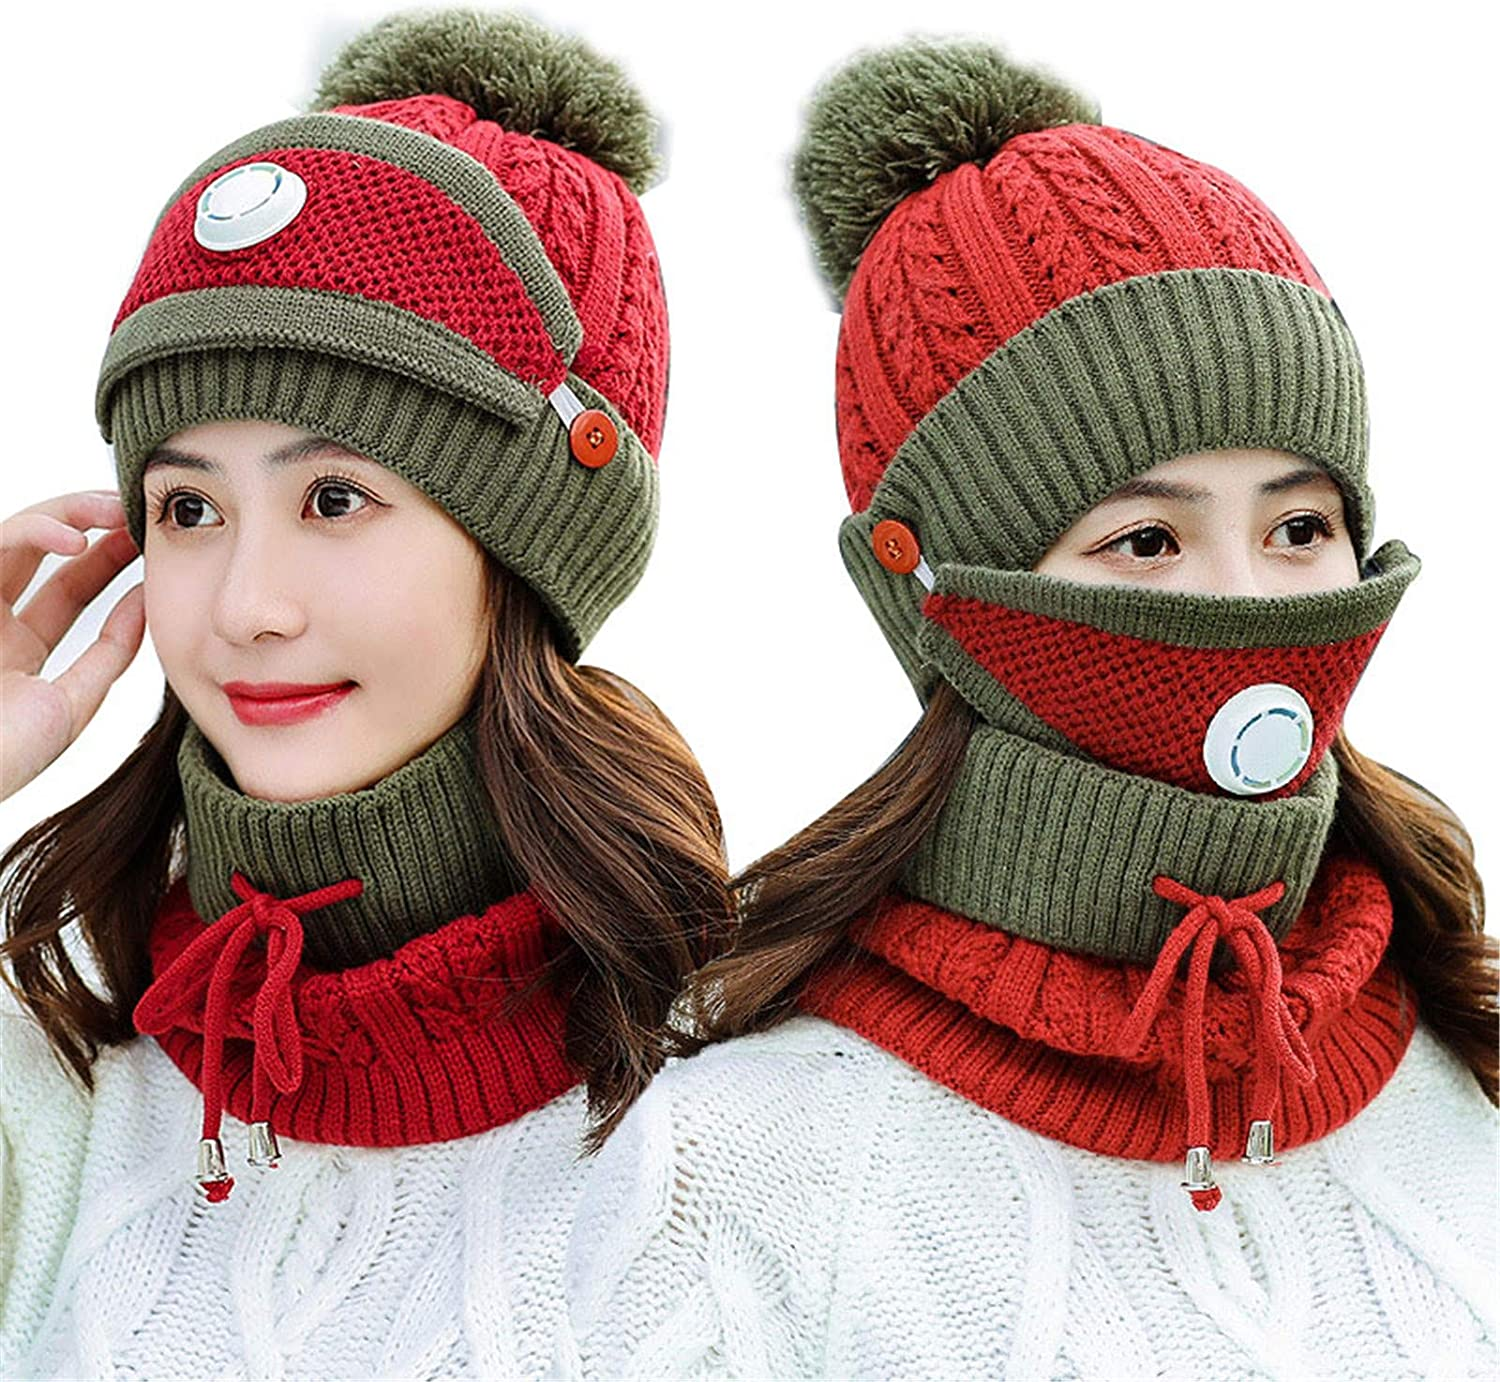 Monkys 3 In 1 Winter Scarf Set Women Warm Scarf Set Thickend Knitted Beanie Hat Scarf Neck Cover Pom Pom Cap For Indoor And Outdoor Sports Amazon Co Uk Kitchen Home